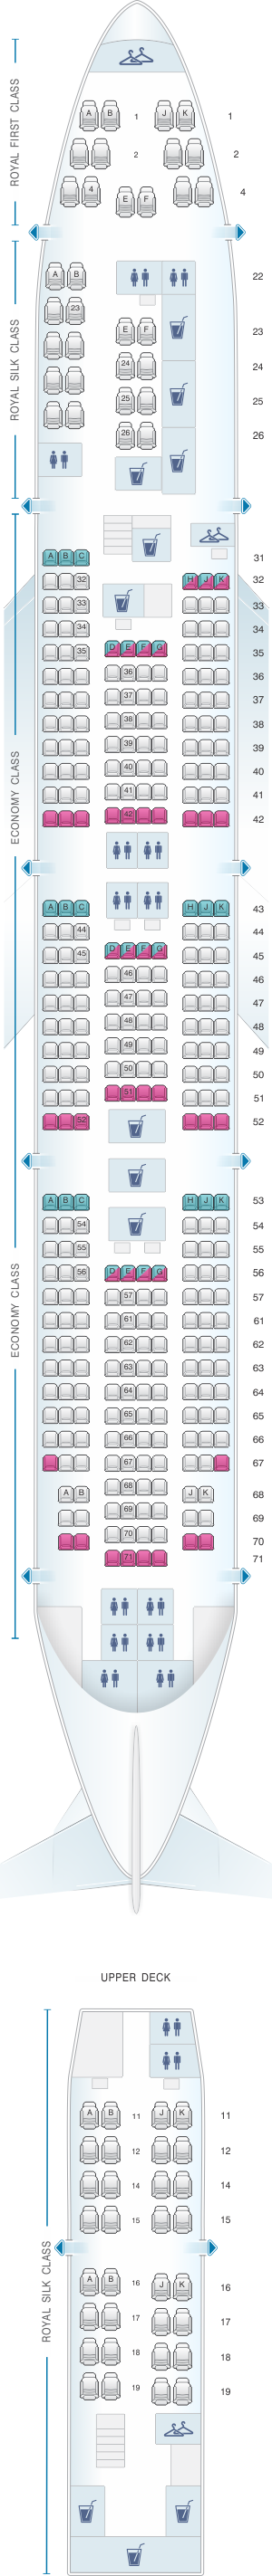 Seat map for Thai Airways International Boeing B747 400 (744)